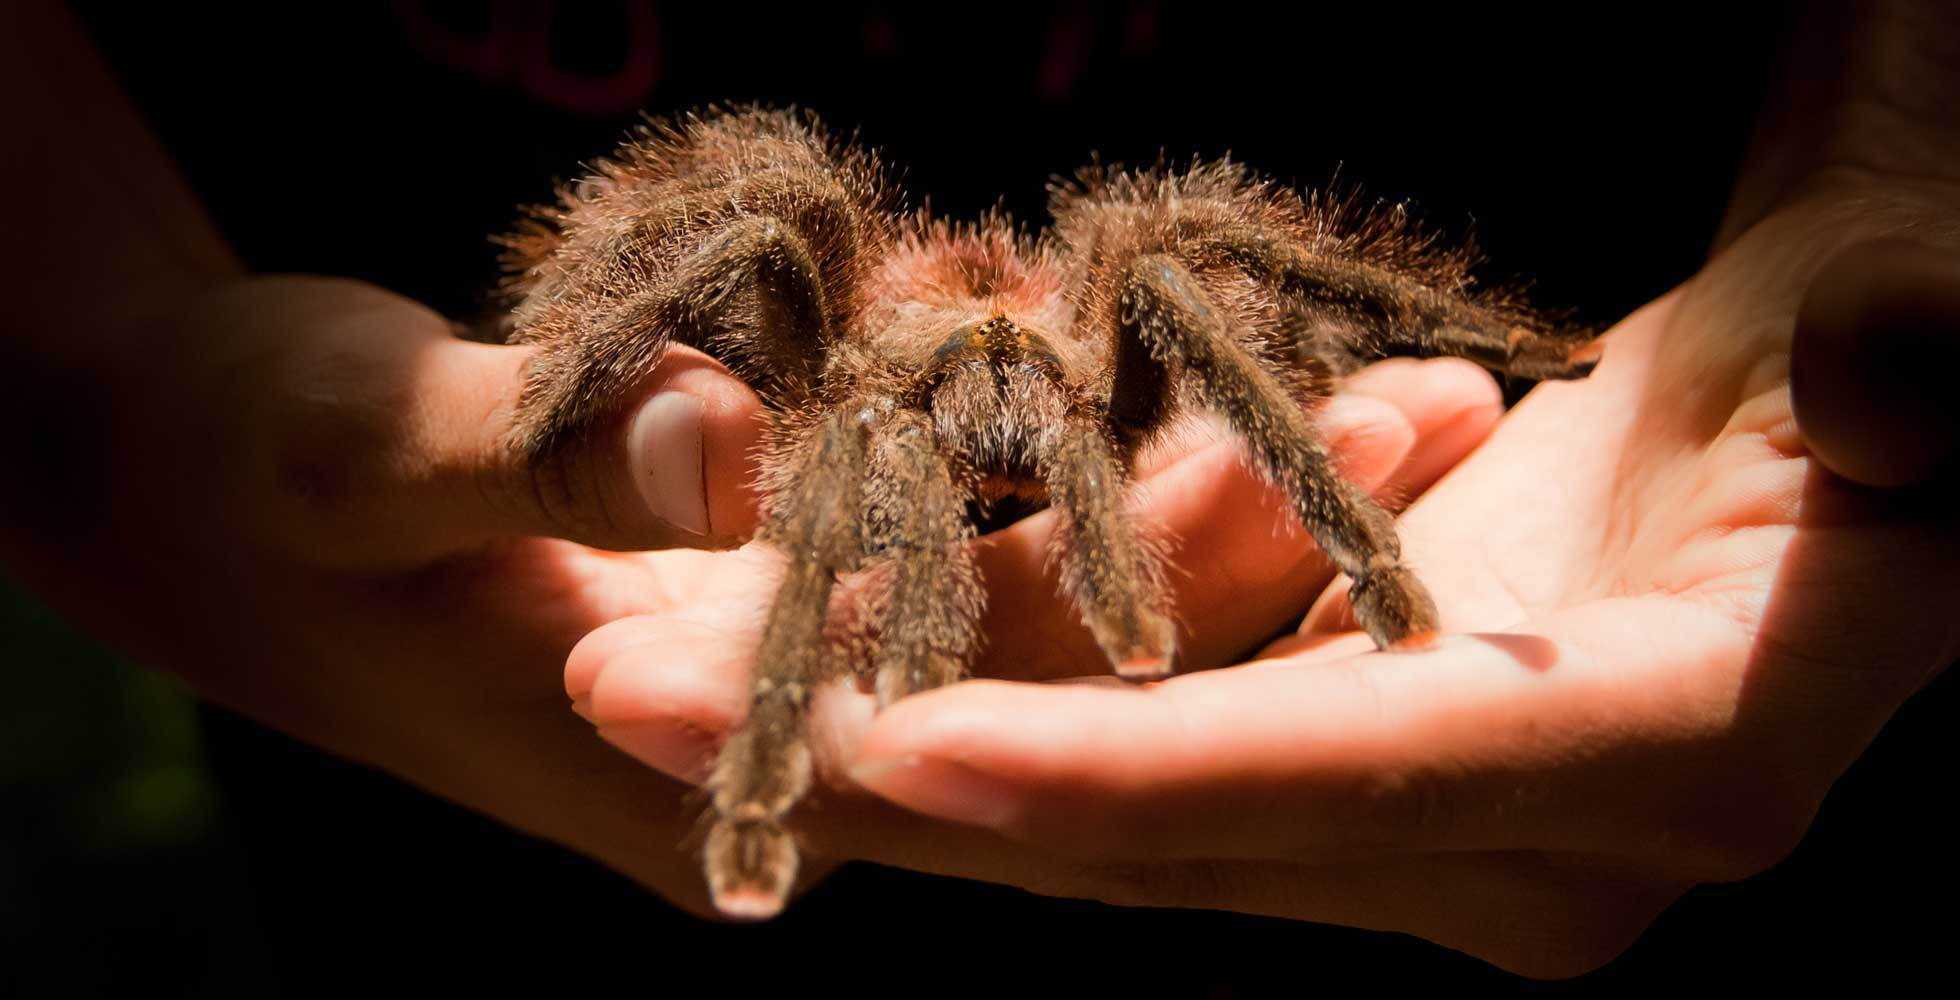 A hand holding a large brown furry palm-sized spider